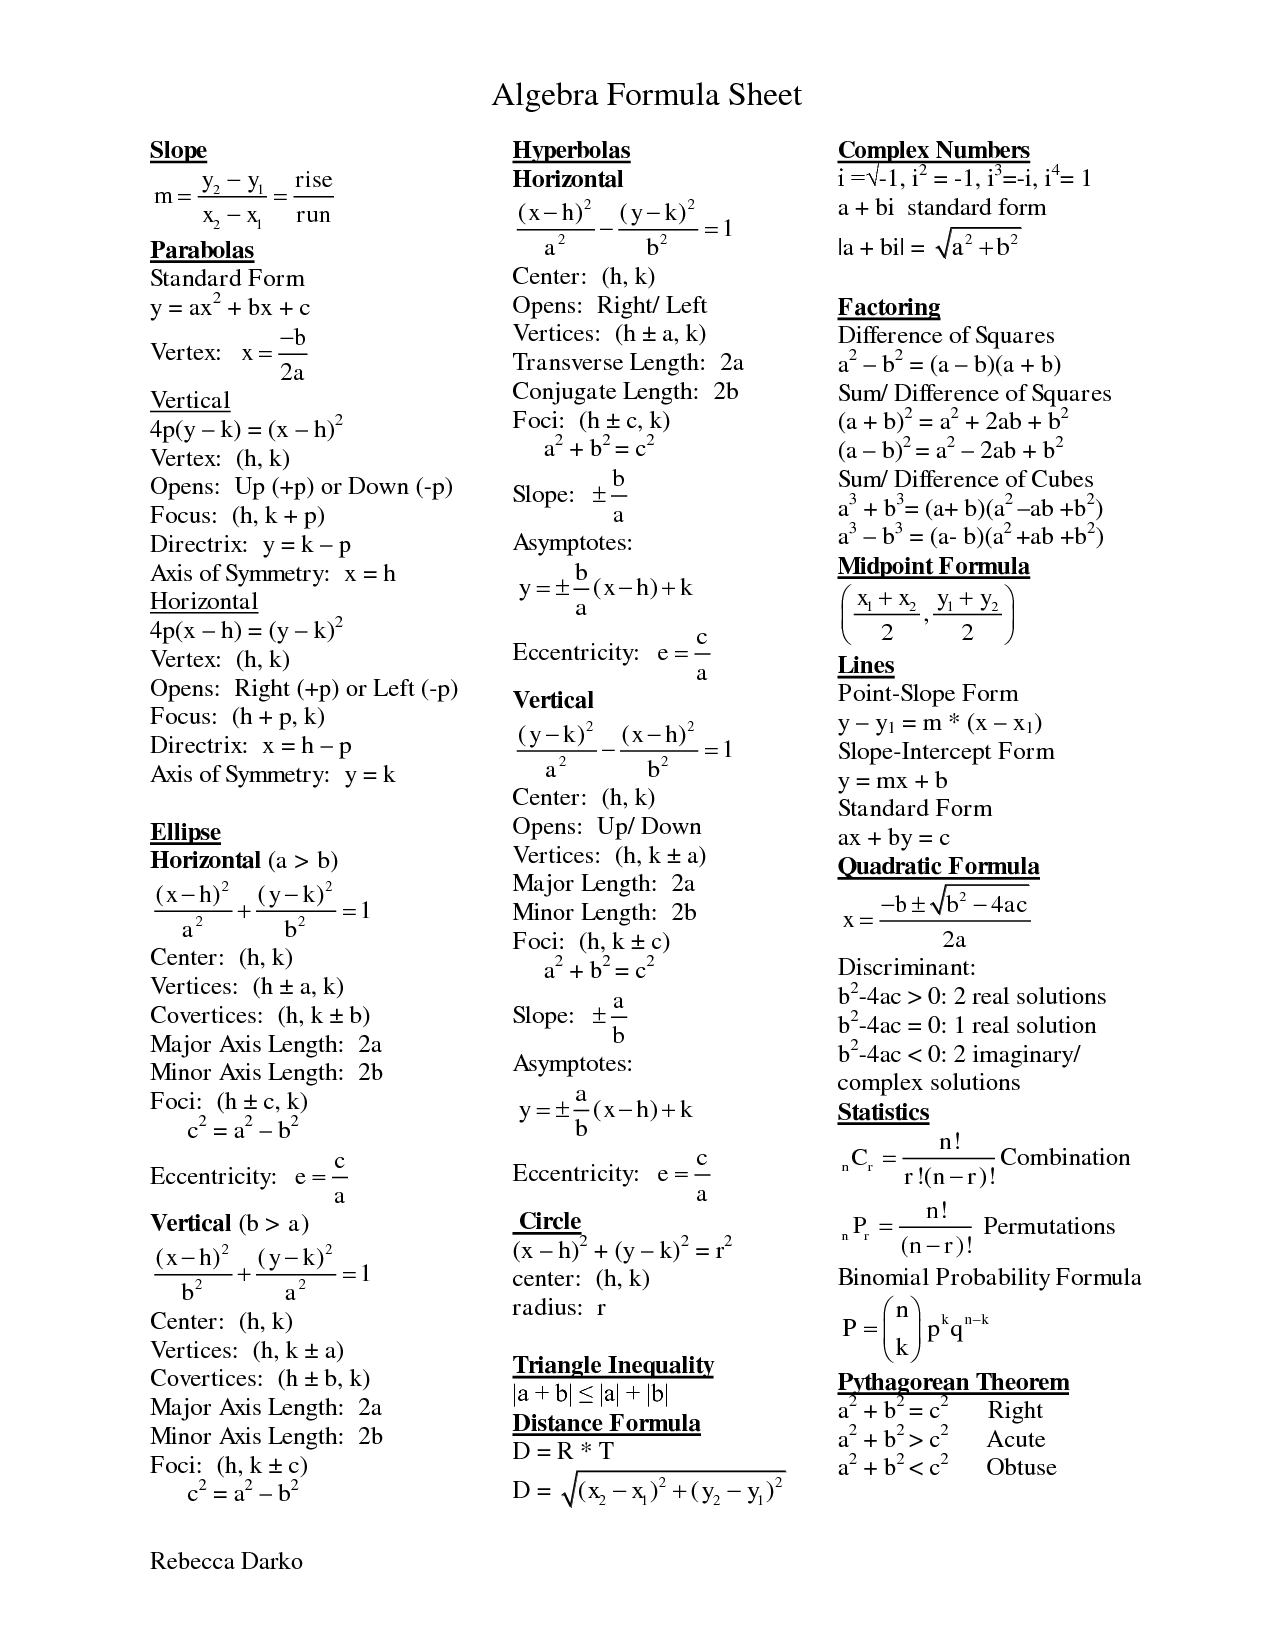 Factoring Cheat Sheet